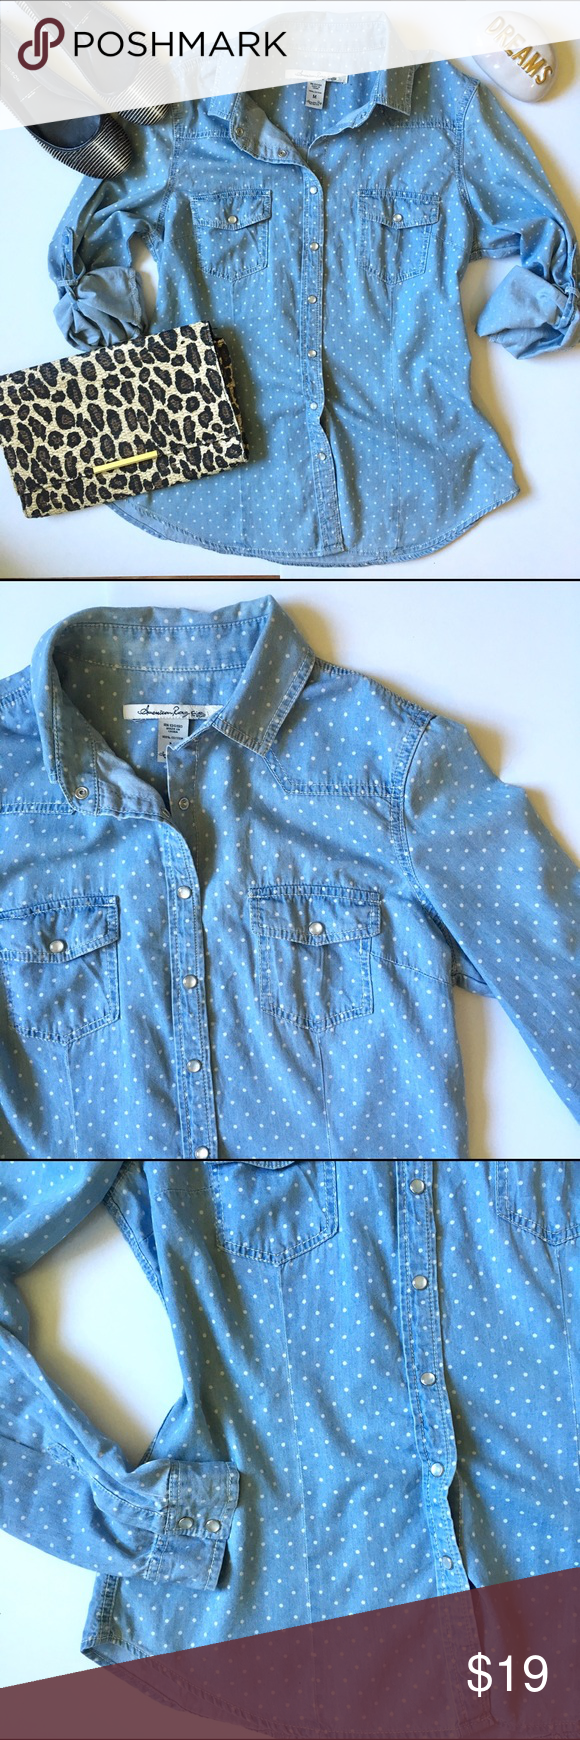 """American Rag chambray polka dot button down top Such a classic piece and a must-have for every wardrobe! This chambray button down features snap closures, two bust pockets, optional rolled sleeves with button tabs. Polka dot. Cotton. 25.5""""L. 19"""" bust laying flat and buttoned. Size Medium. *Pants shown are also for sale in my closet, buy the look and save! **Stock photos for styling ideas only. American Rag Tops Button Down Shirts"""